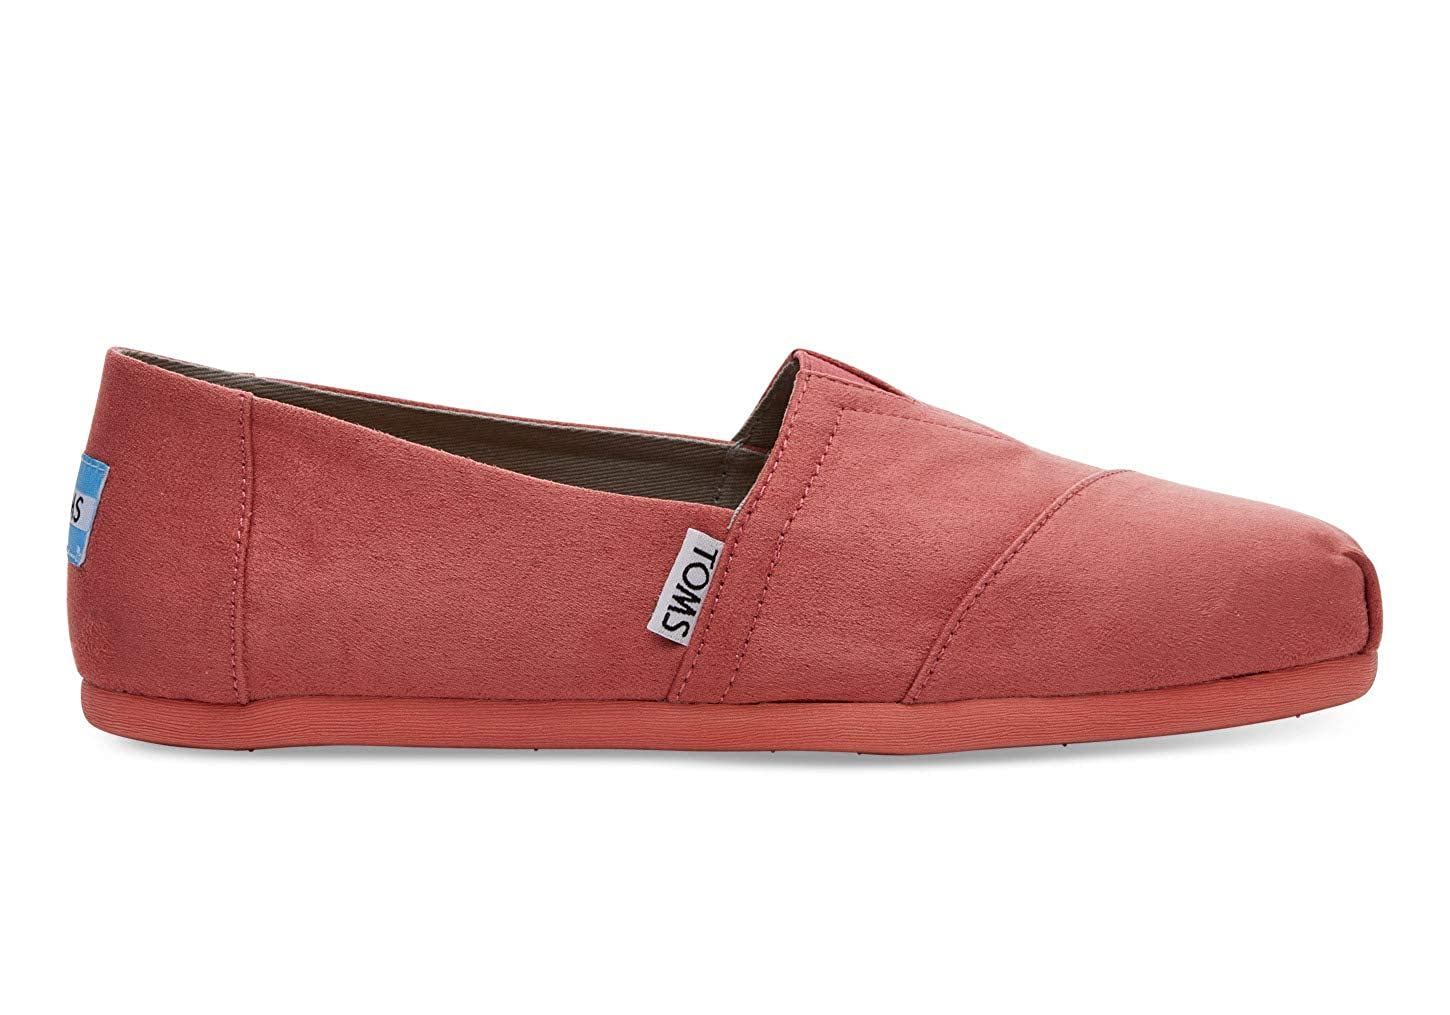 0d0dfd983cb Amazon.com  TOMS Men s Seasonal Classics Flat  Toms  Shoes